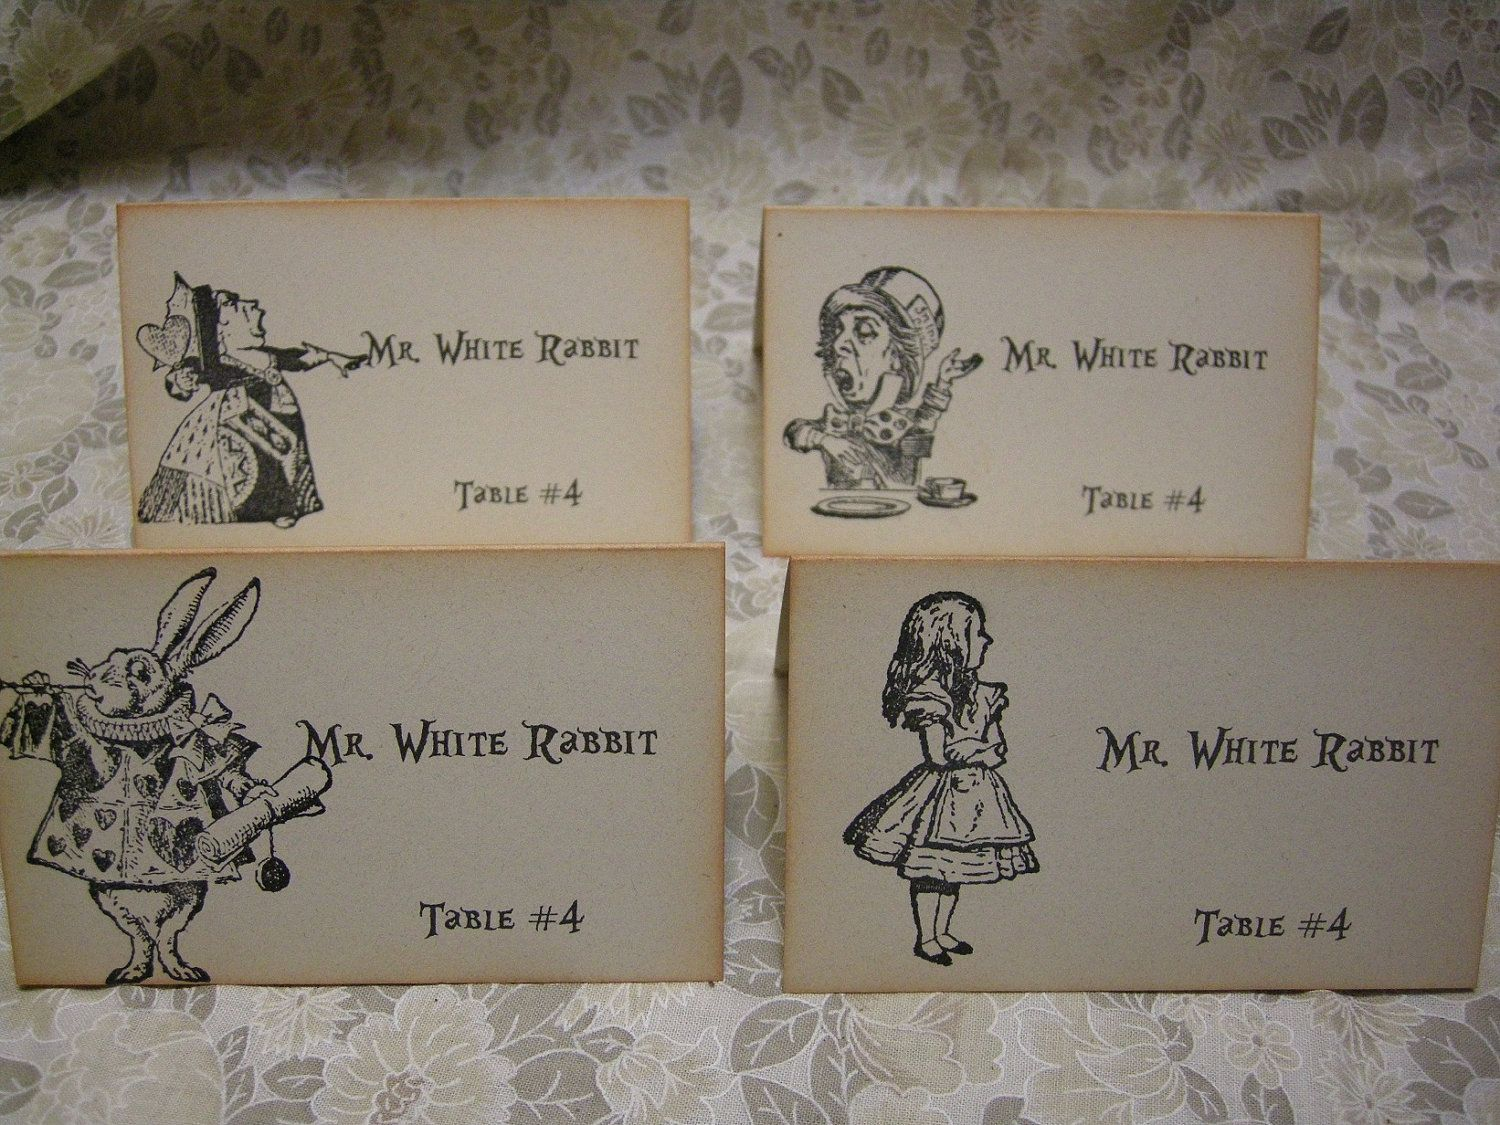 mad hatter teparty invitations pinterest%0A Alice in Wonderland Name Cards   Wedding place card   escort card   name  card    Red Queen  Mad Hatter  White Rabbit  Set of